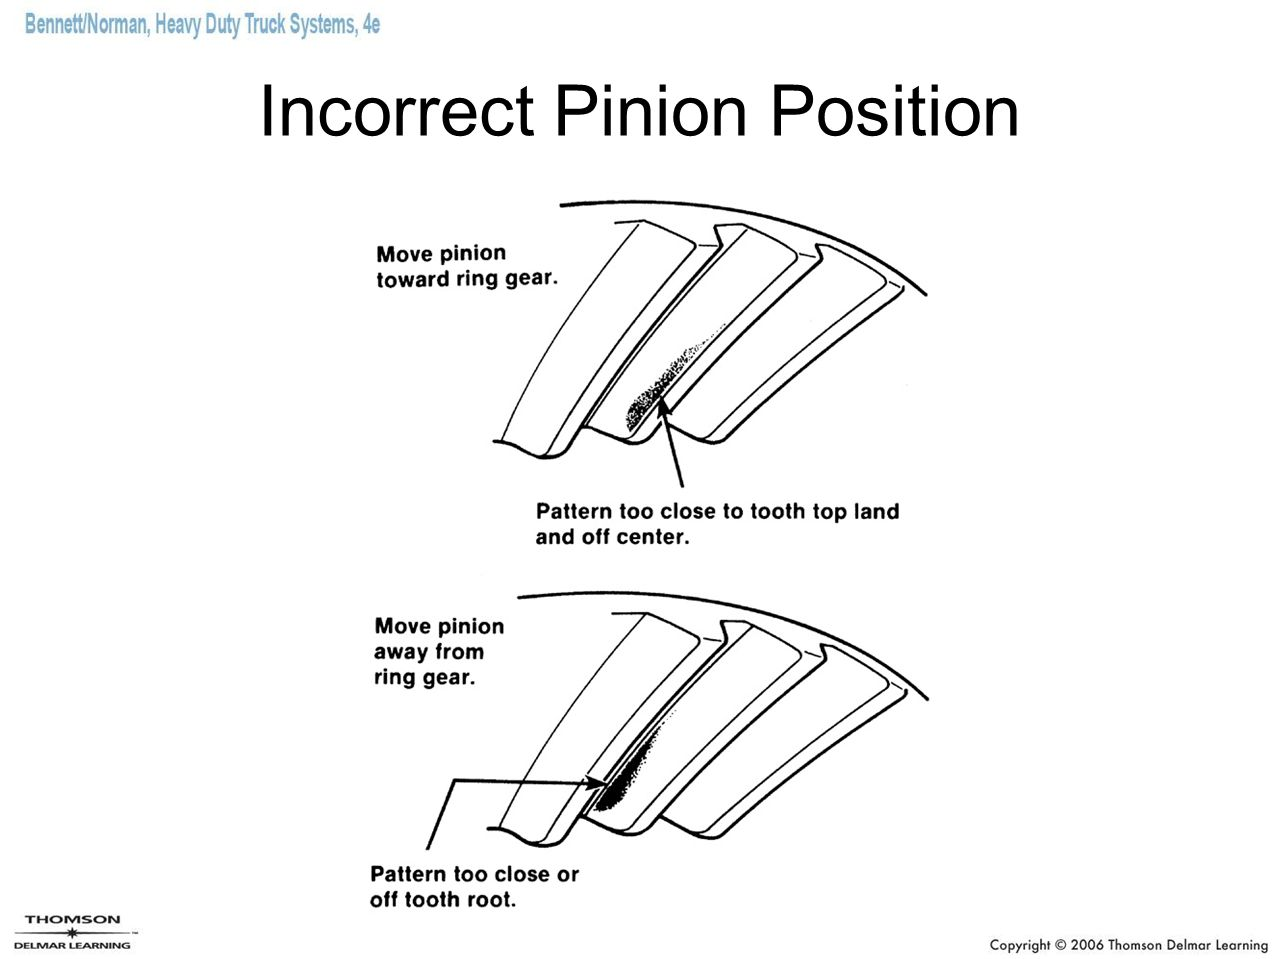 Incorrect Pinion Position